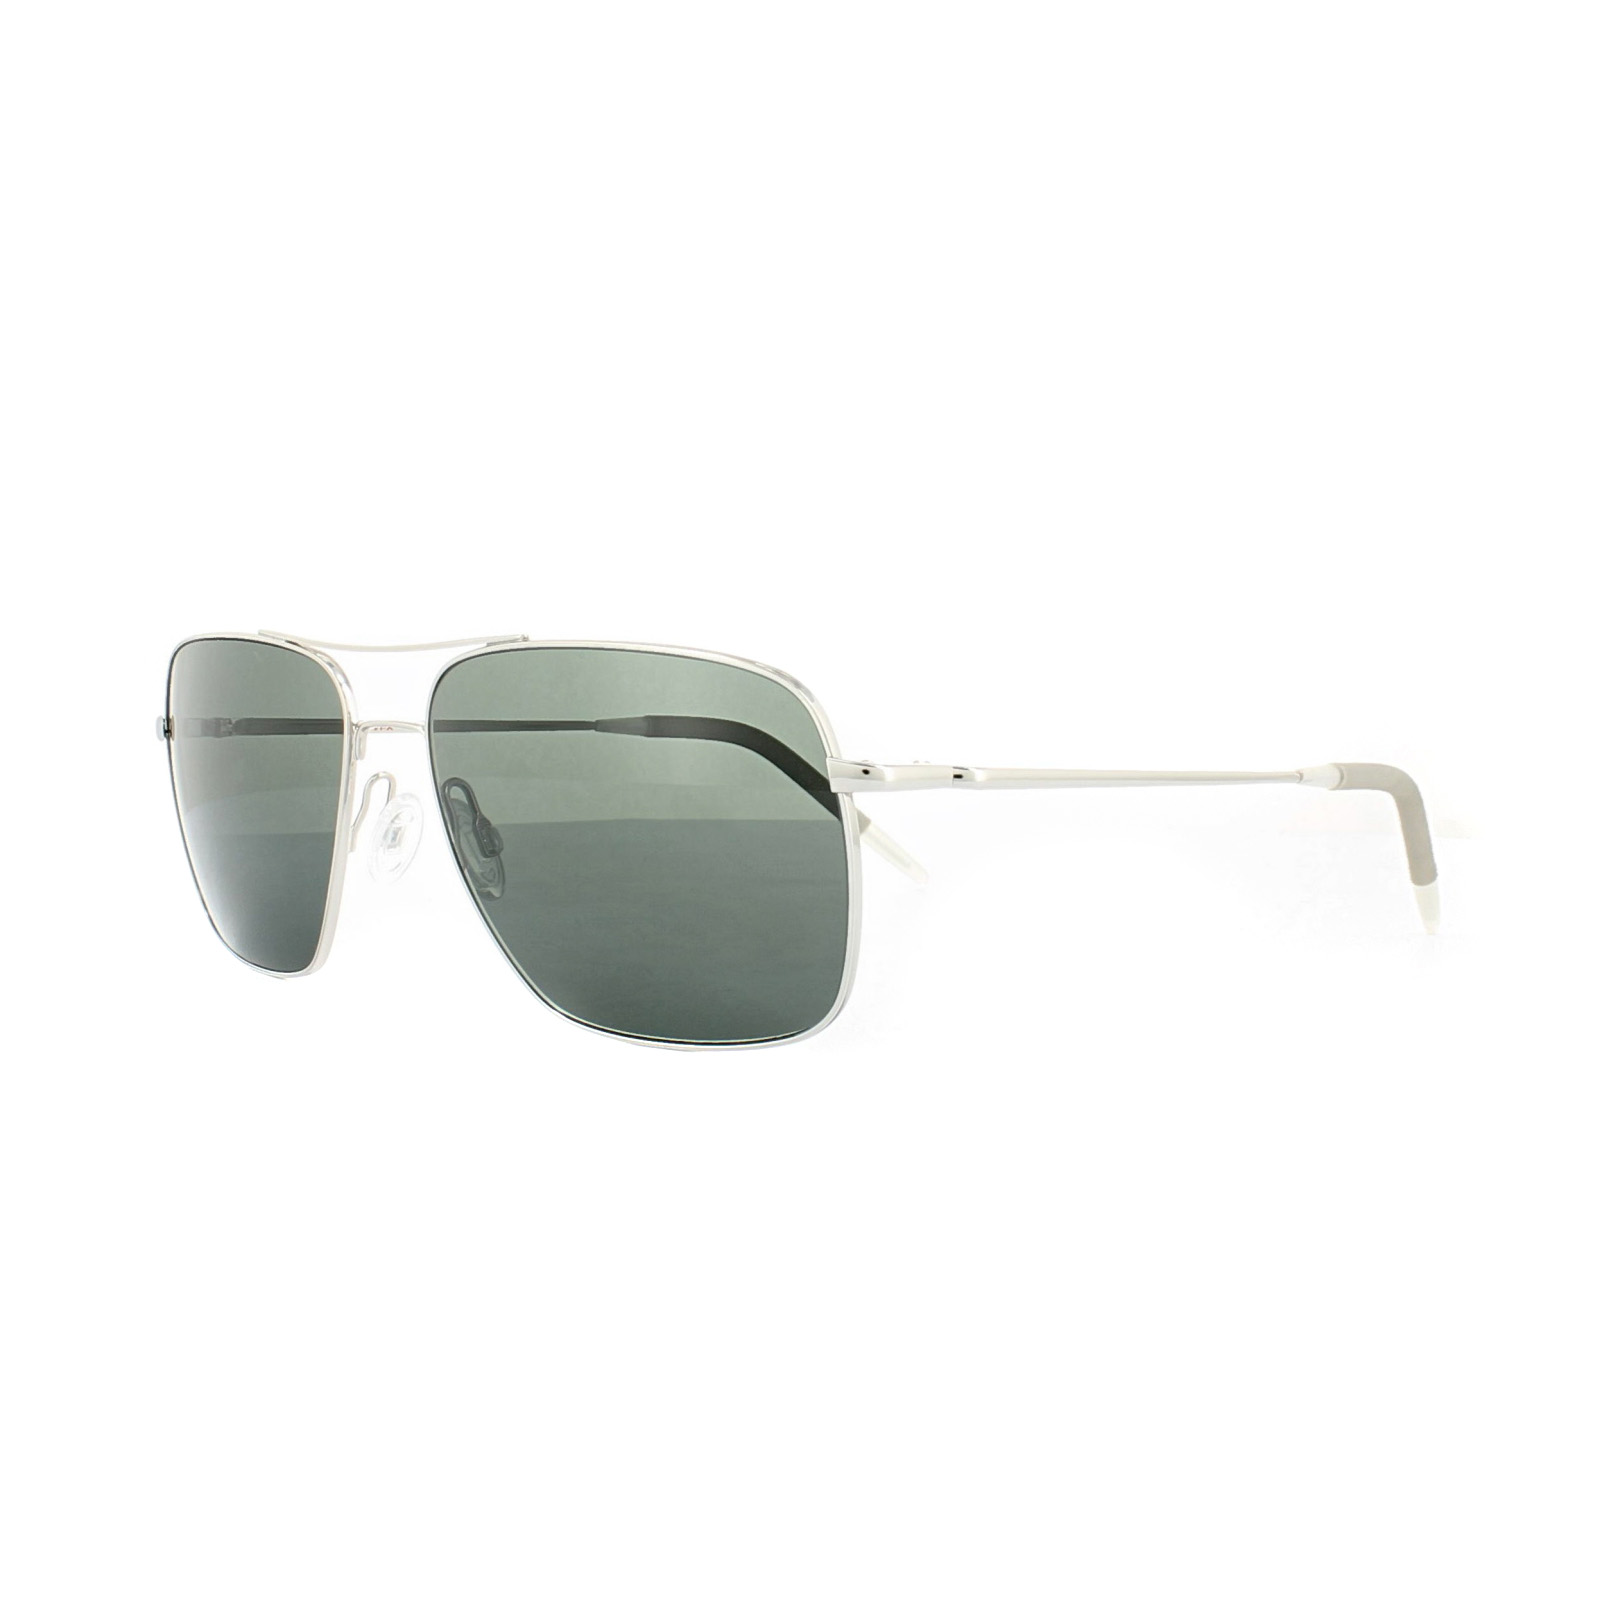 edc0b350ba4 Cheap Oliver Peoples Clifton 1150 Sunglasses - Discounted Sunglasses